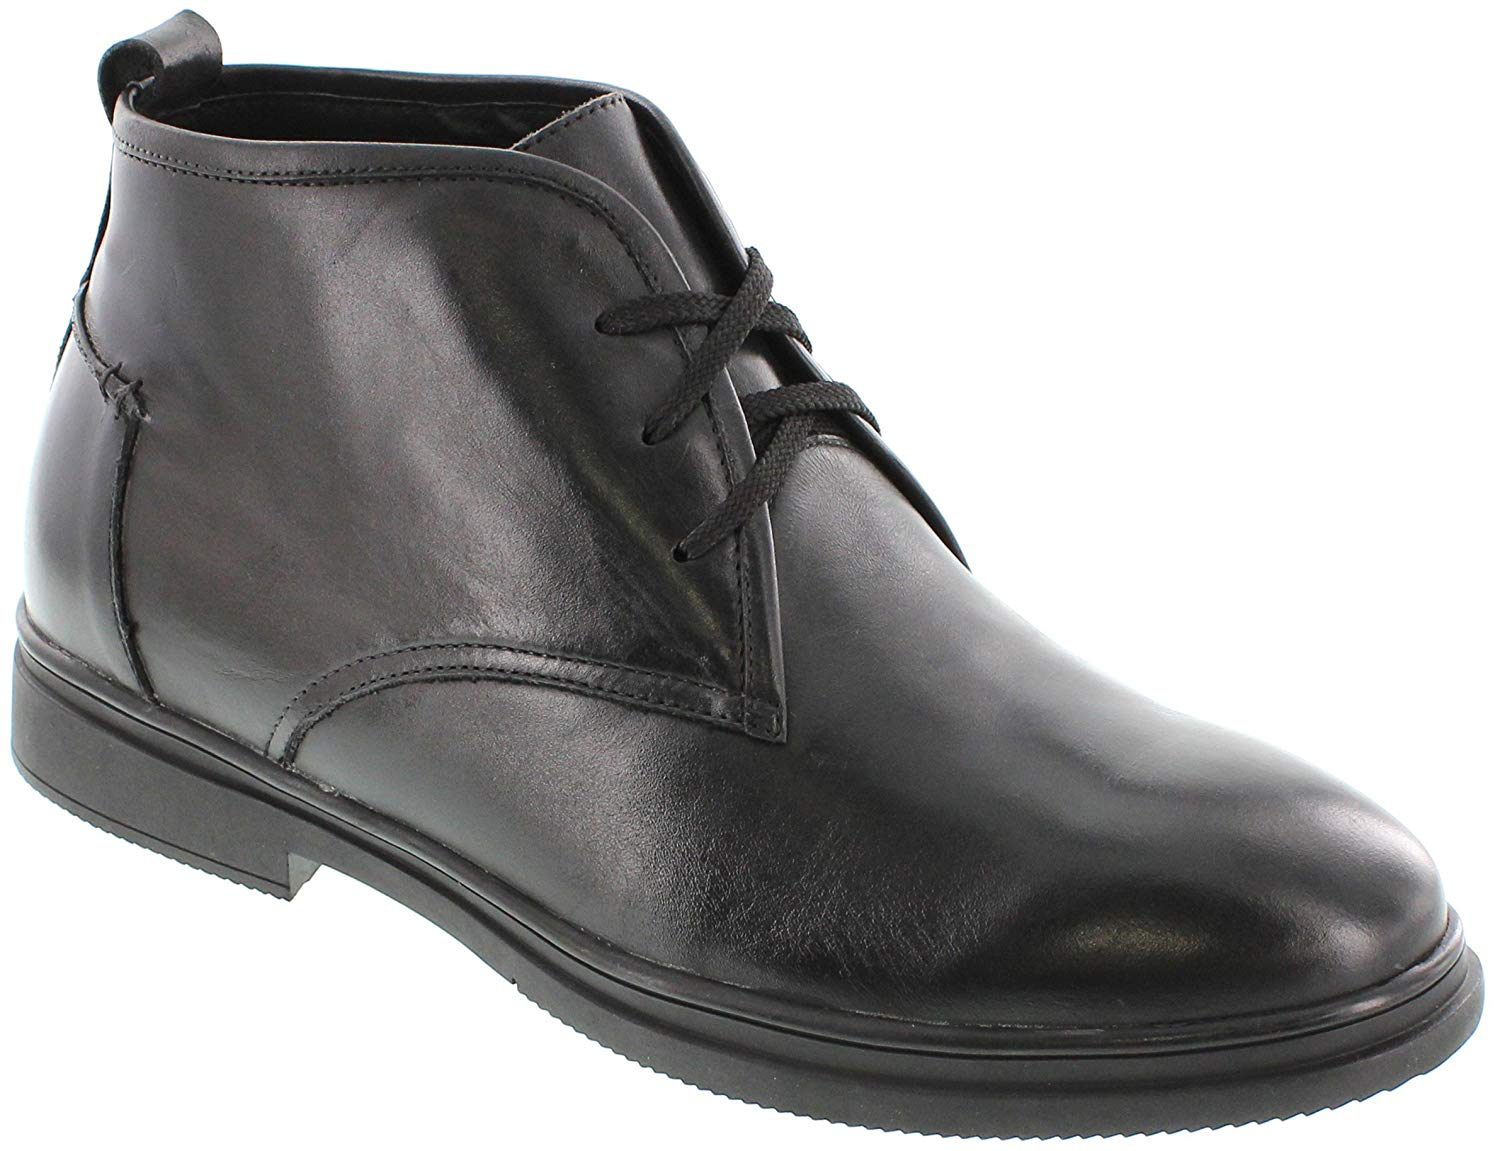 Toto - G8601-3 Inches Taller - Height Increasing Elevator Shoes-Black Boots